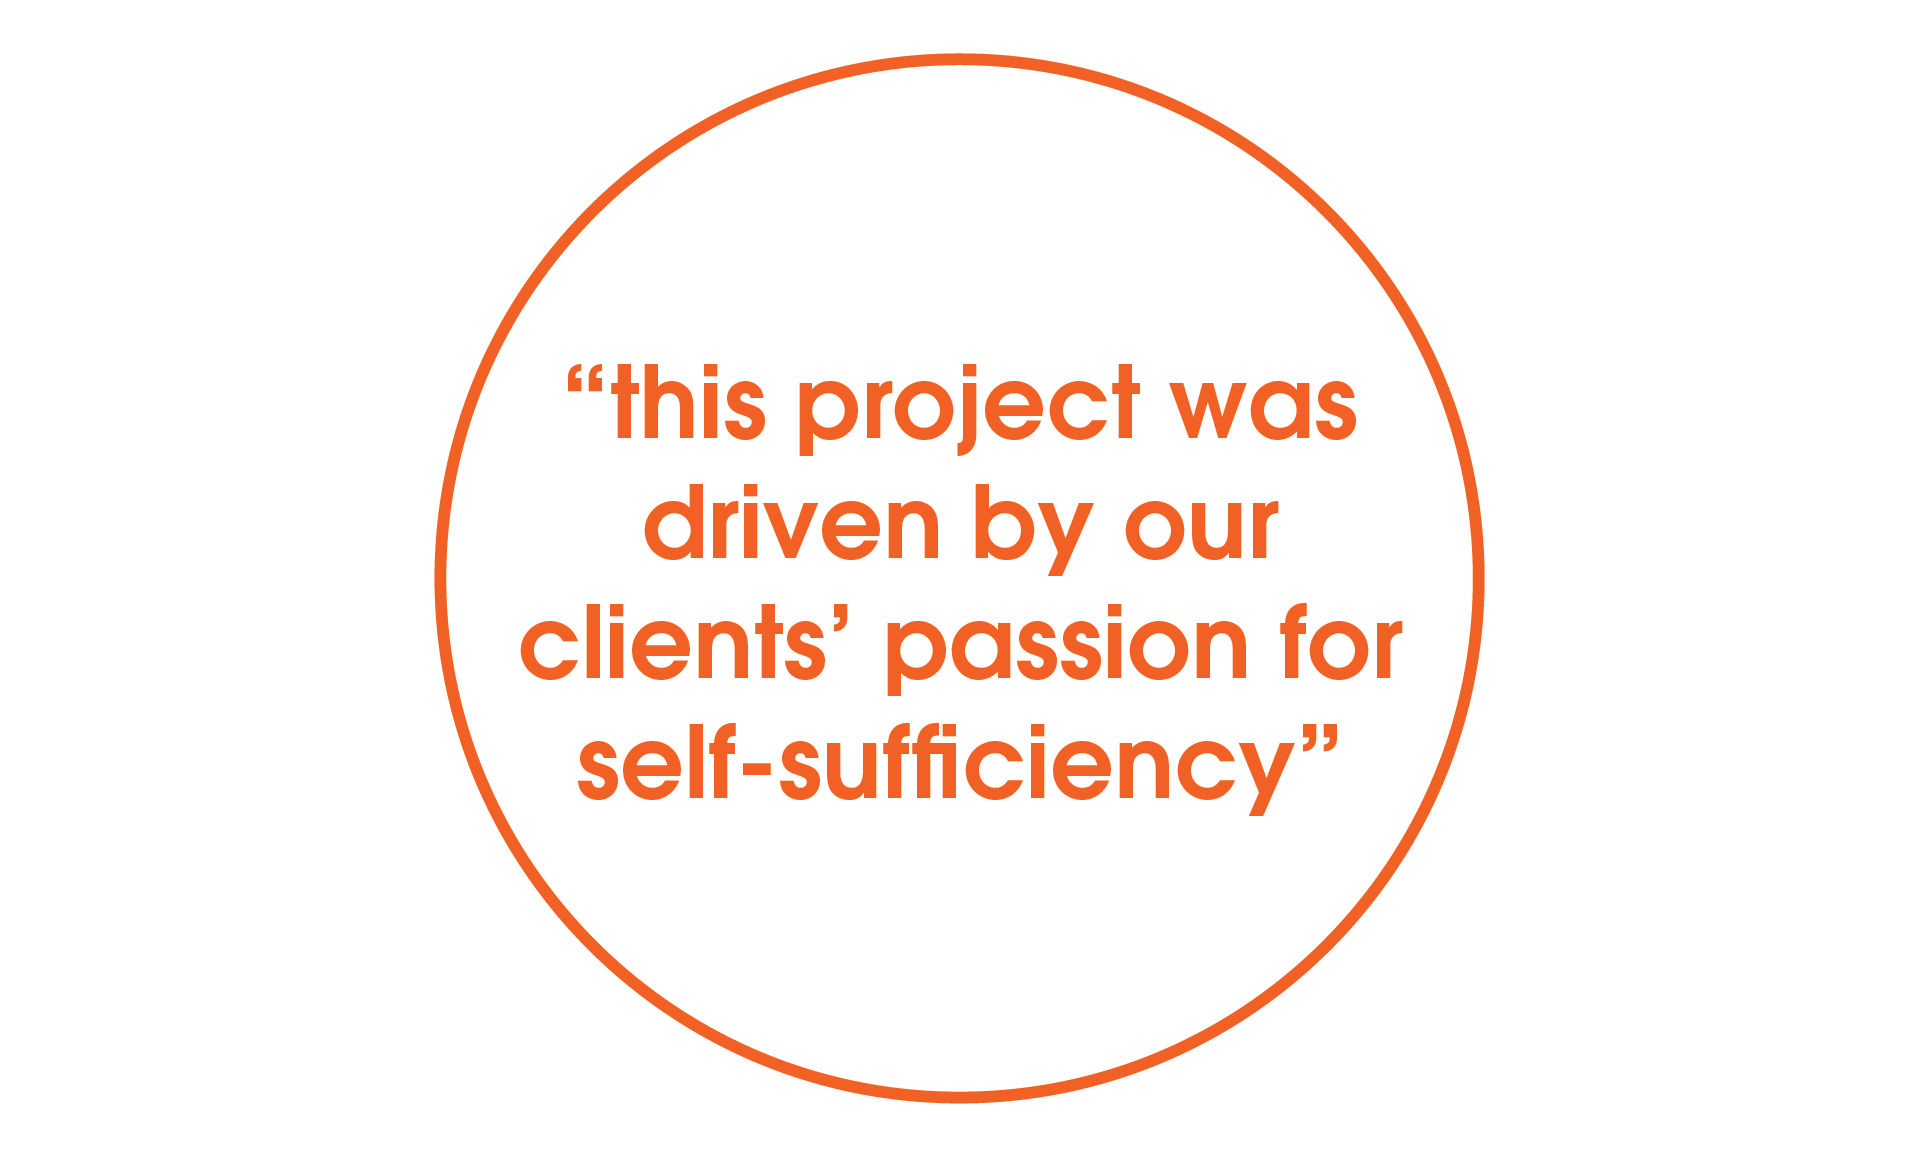 driven by our client's passion for self-sufficiency quote